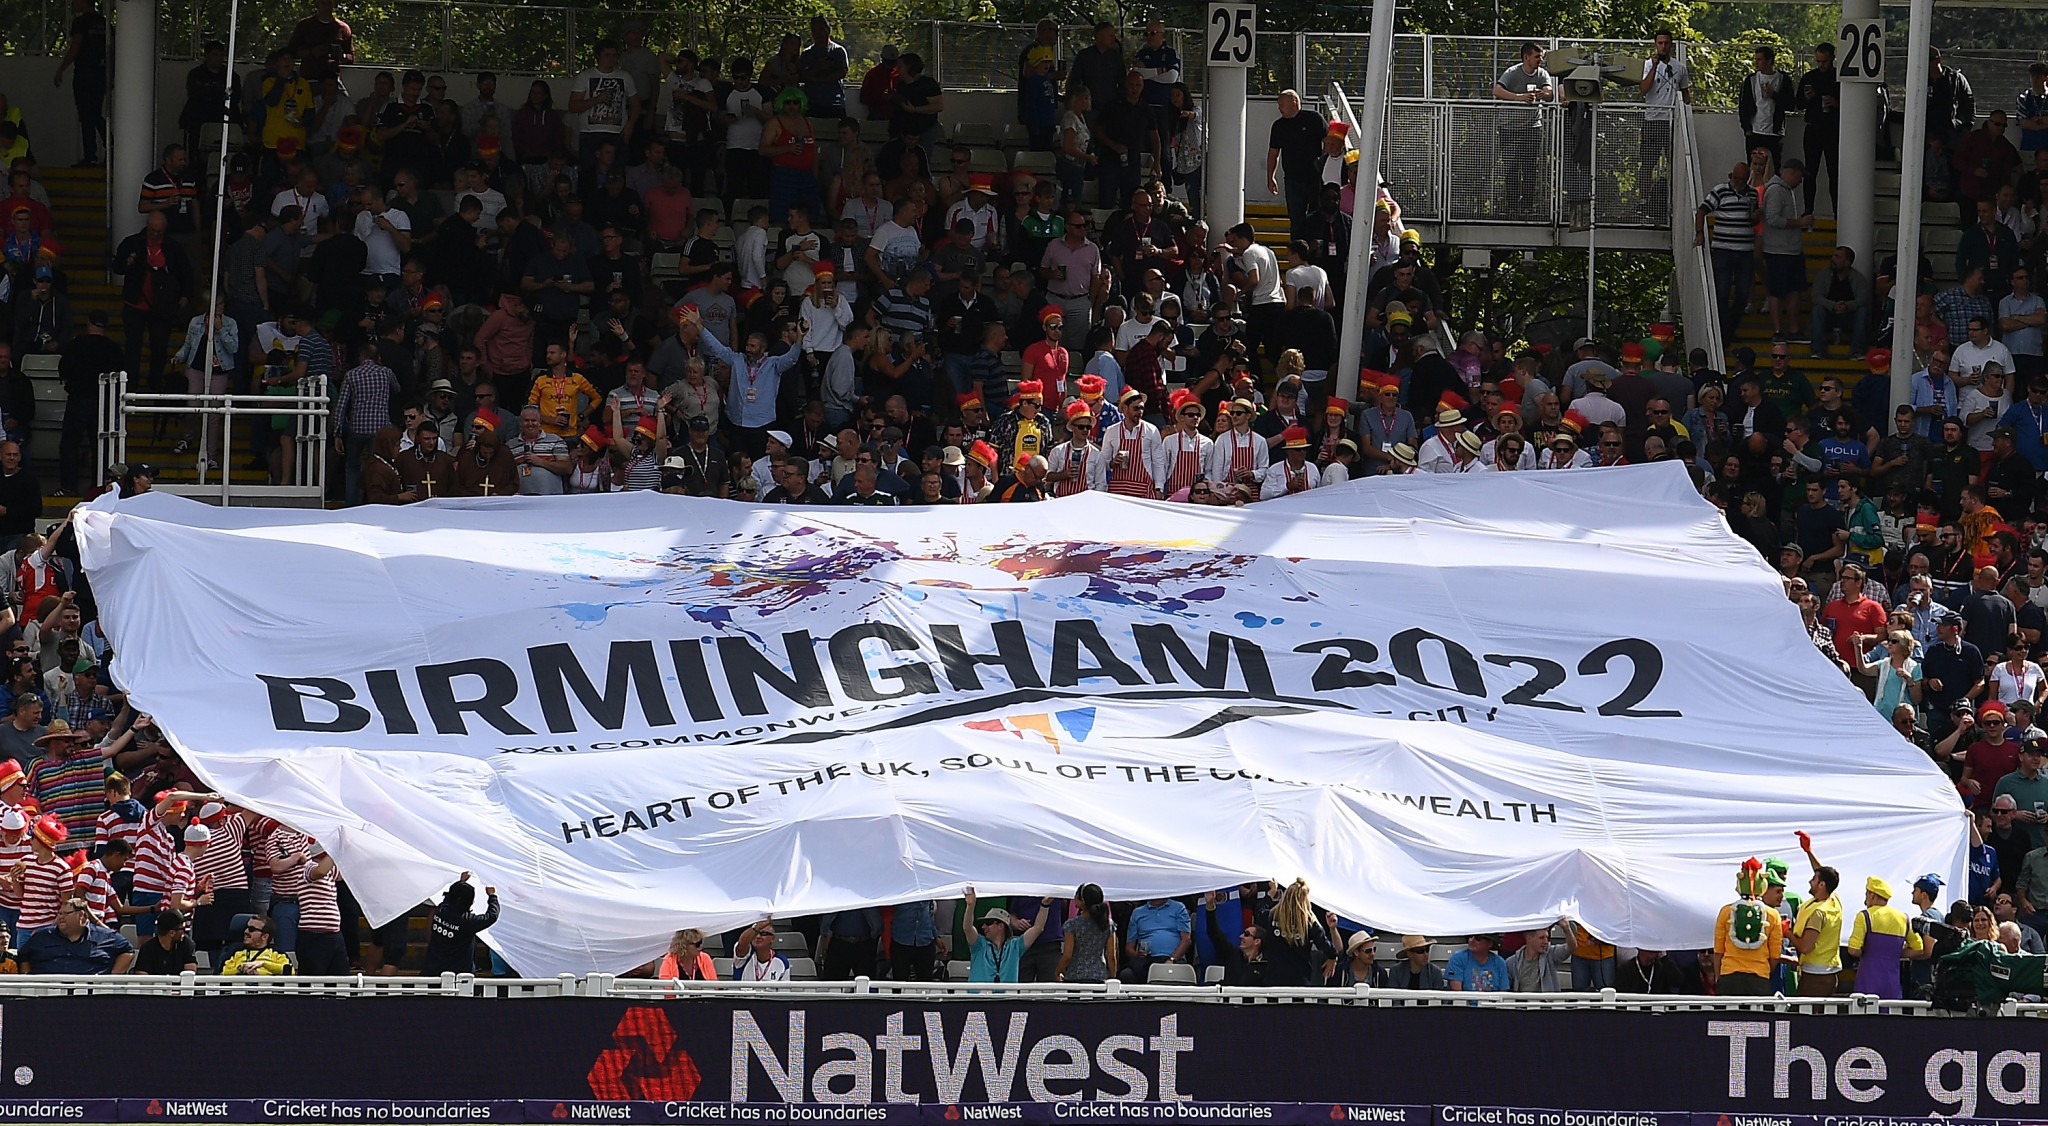 Birmingham City Council claim services will be unaffected by potential hosting of 2022 Commonwealth Games